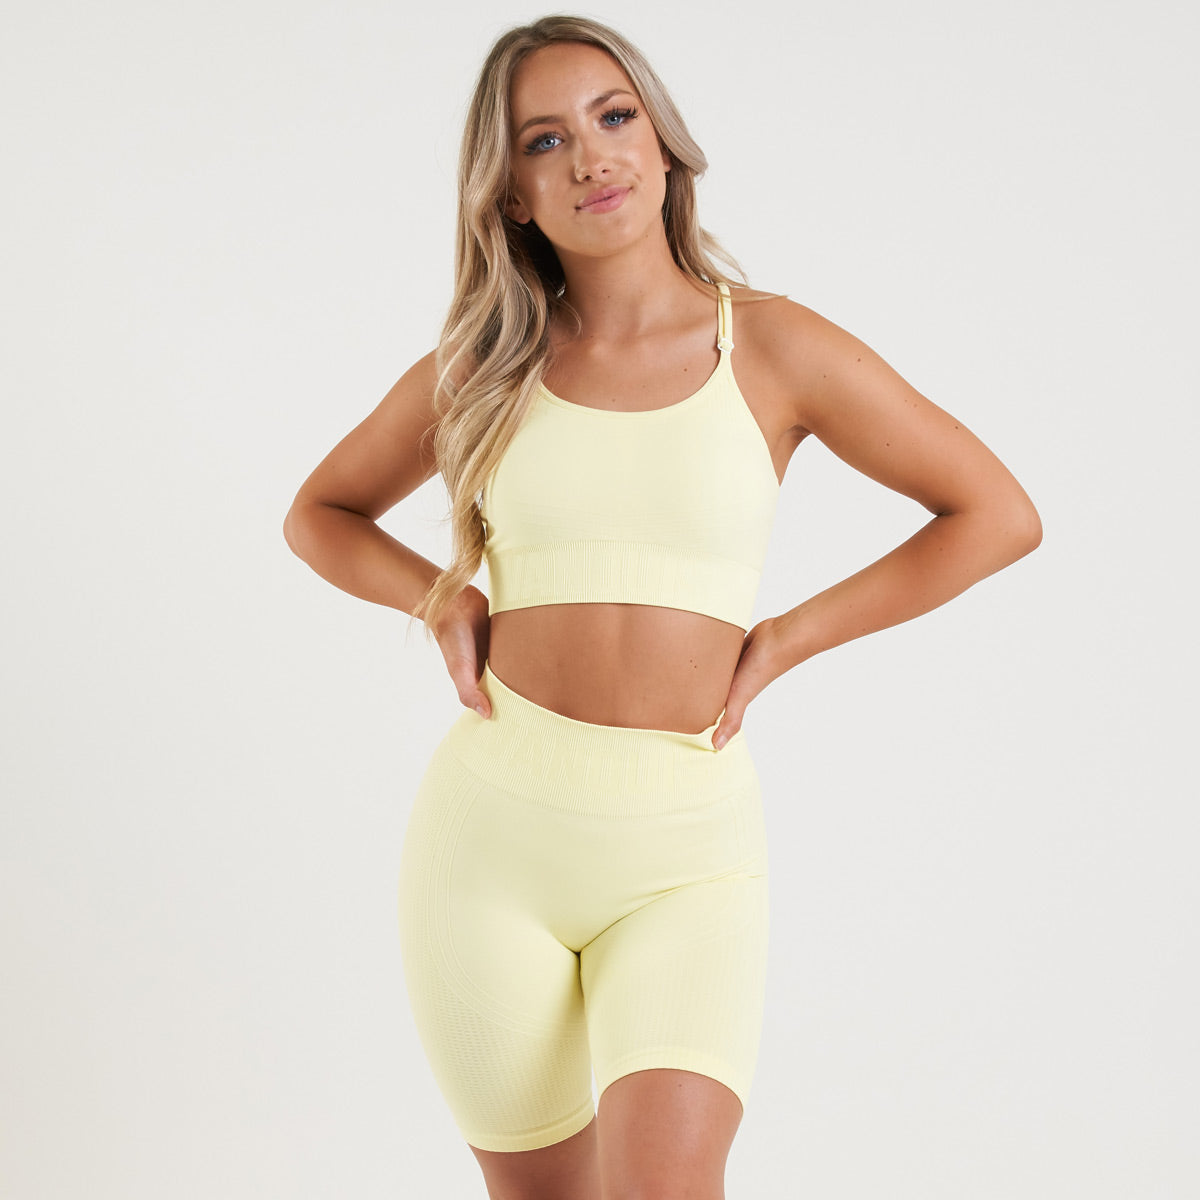 Vanquish Bright Women's Soft Lemon Seamless Sports Bra